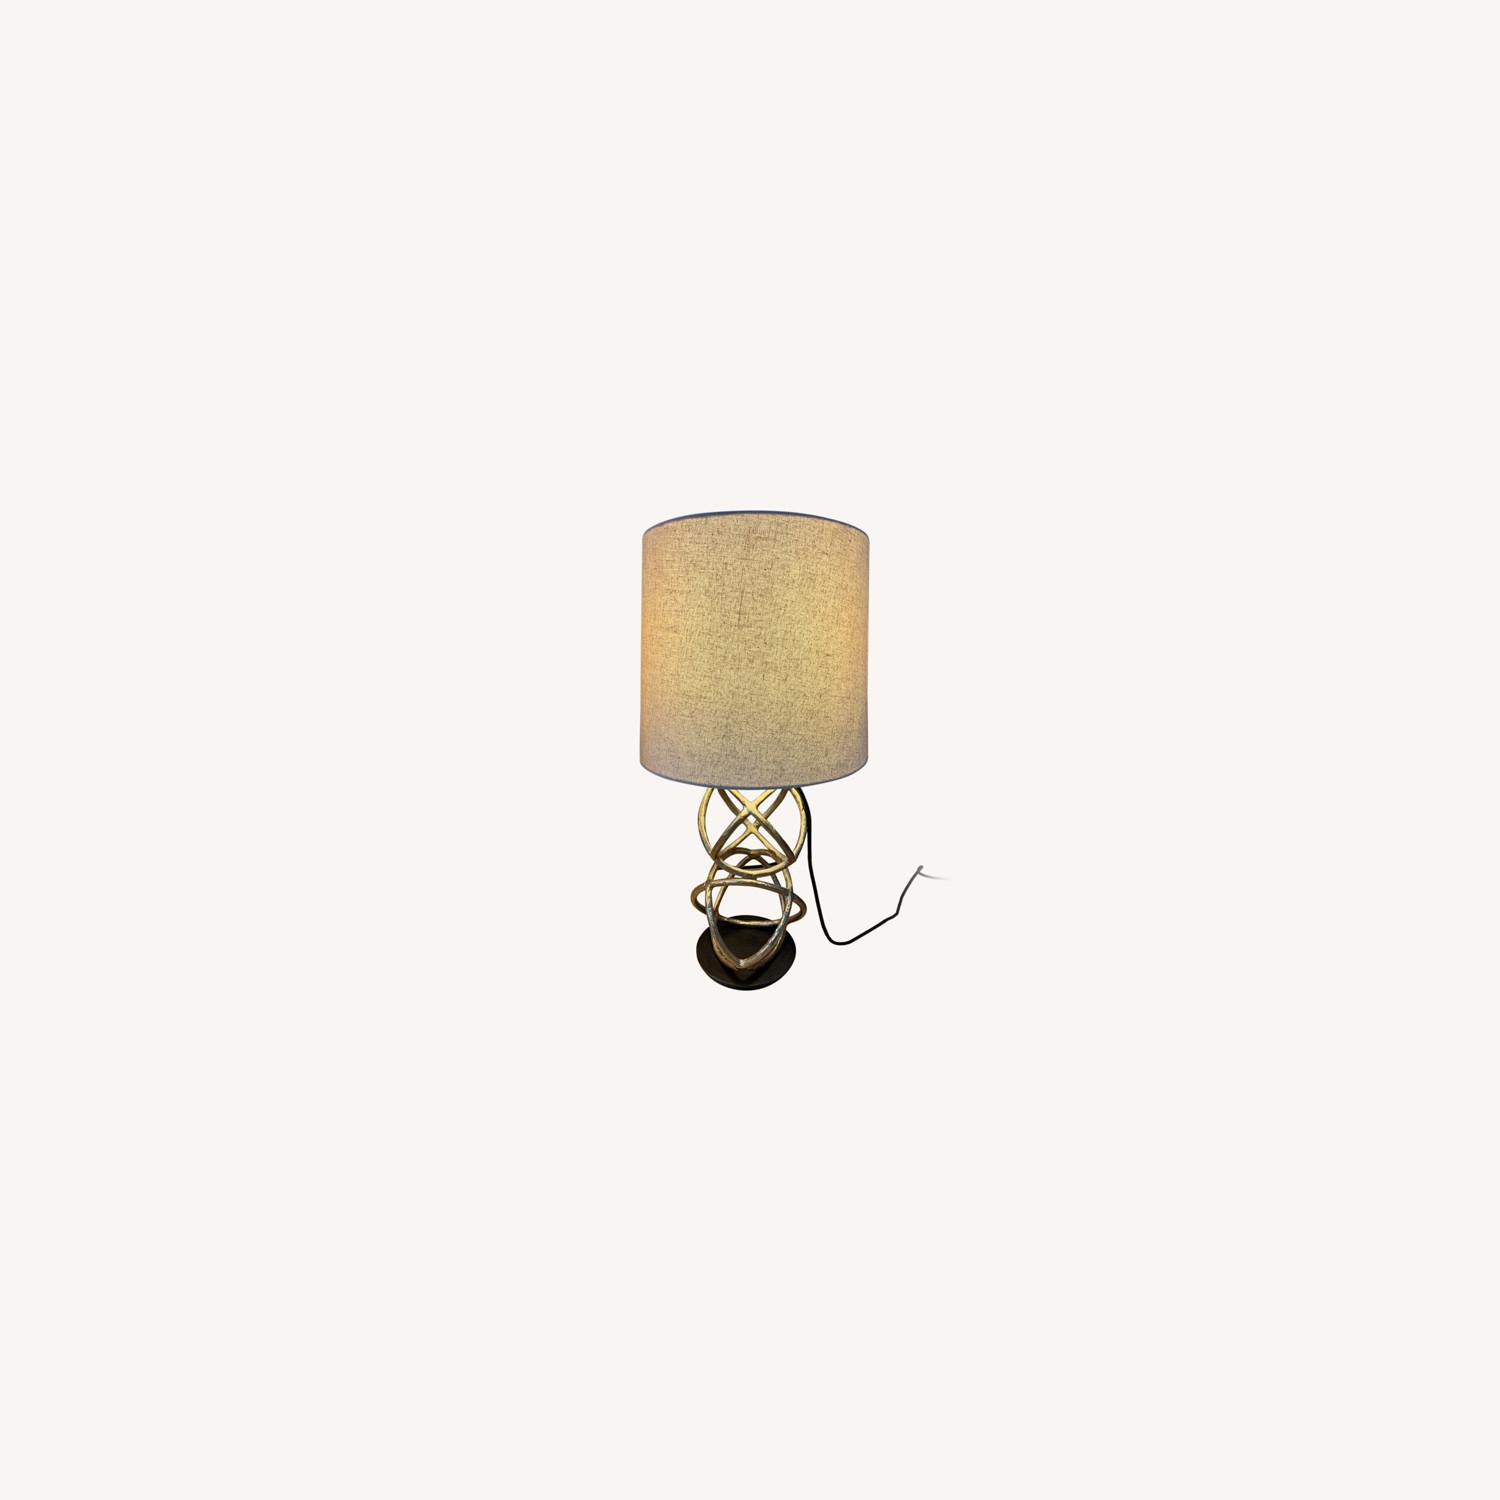 West Elm Double Geodesic Sculpture Table Lamps - image-0